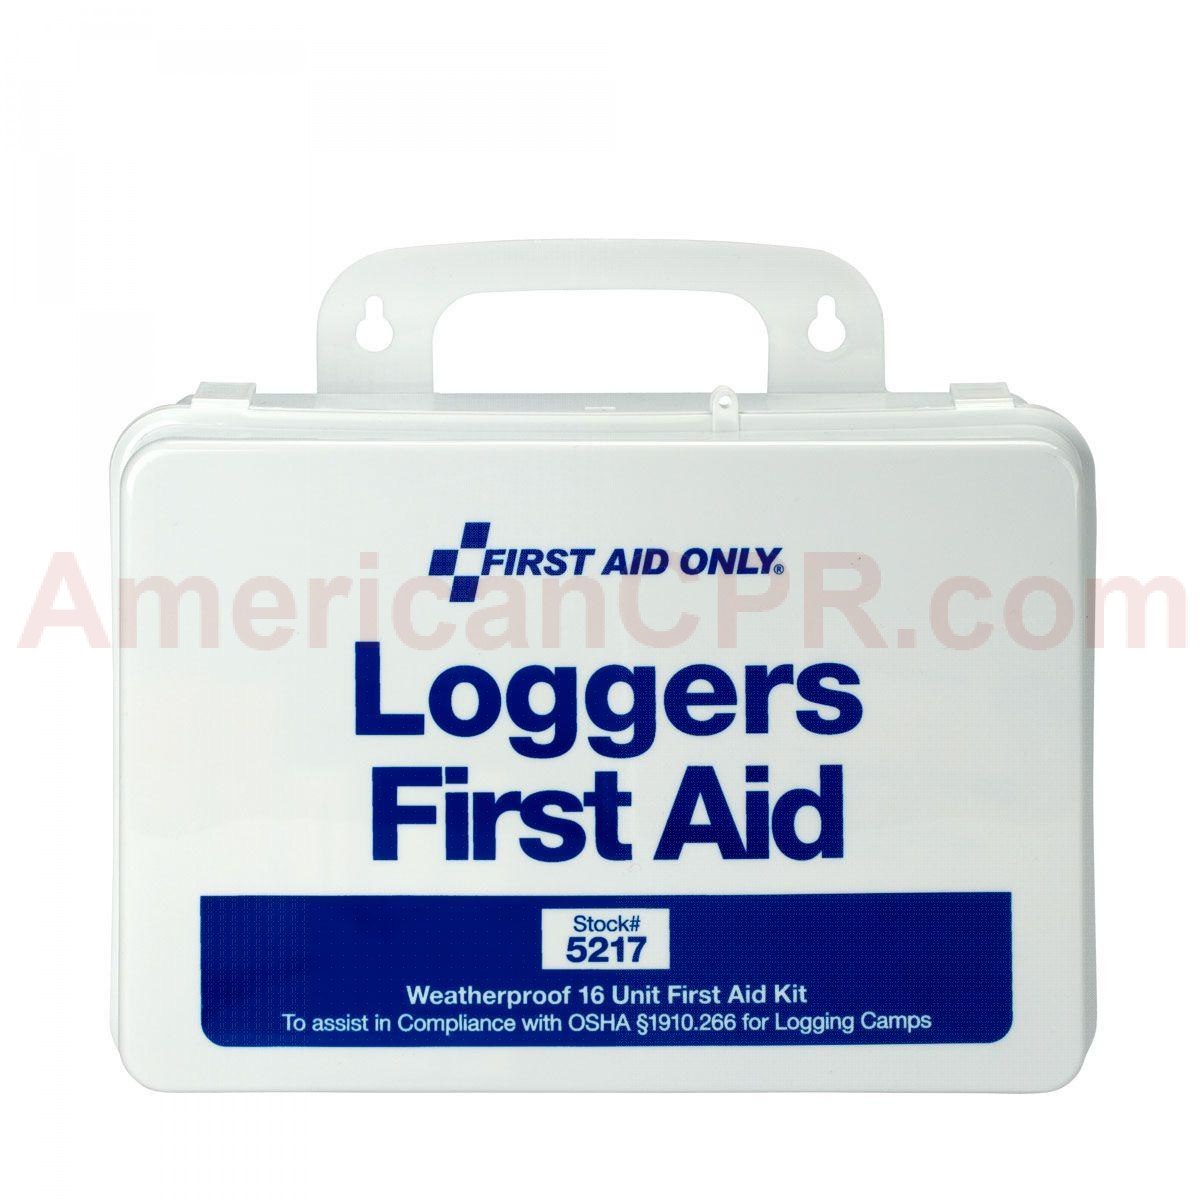 25 Person Logger First Aid Kit - Plastic - First Aid Only